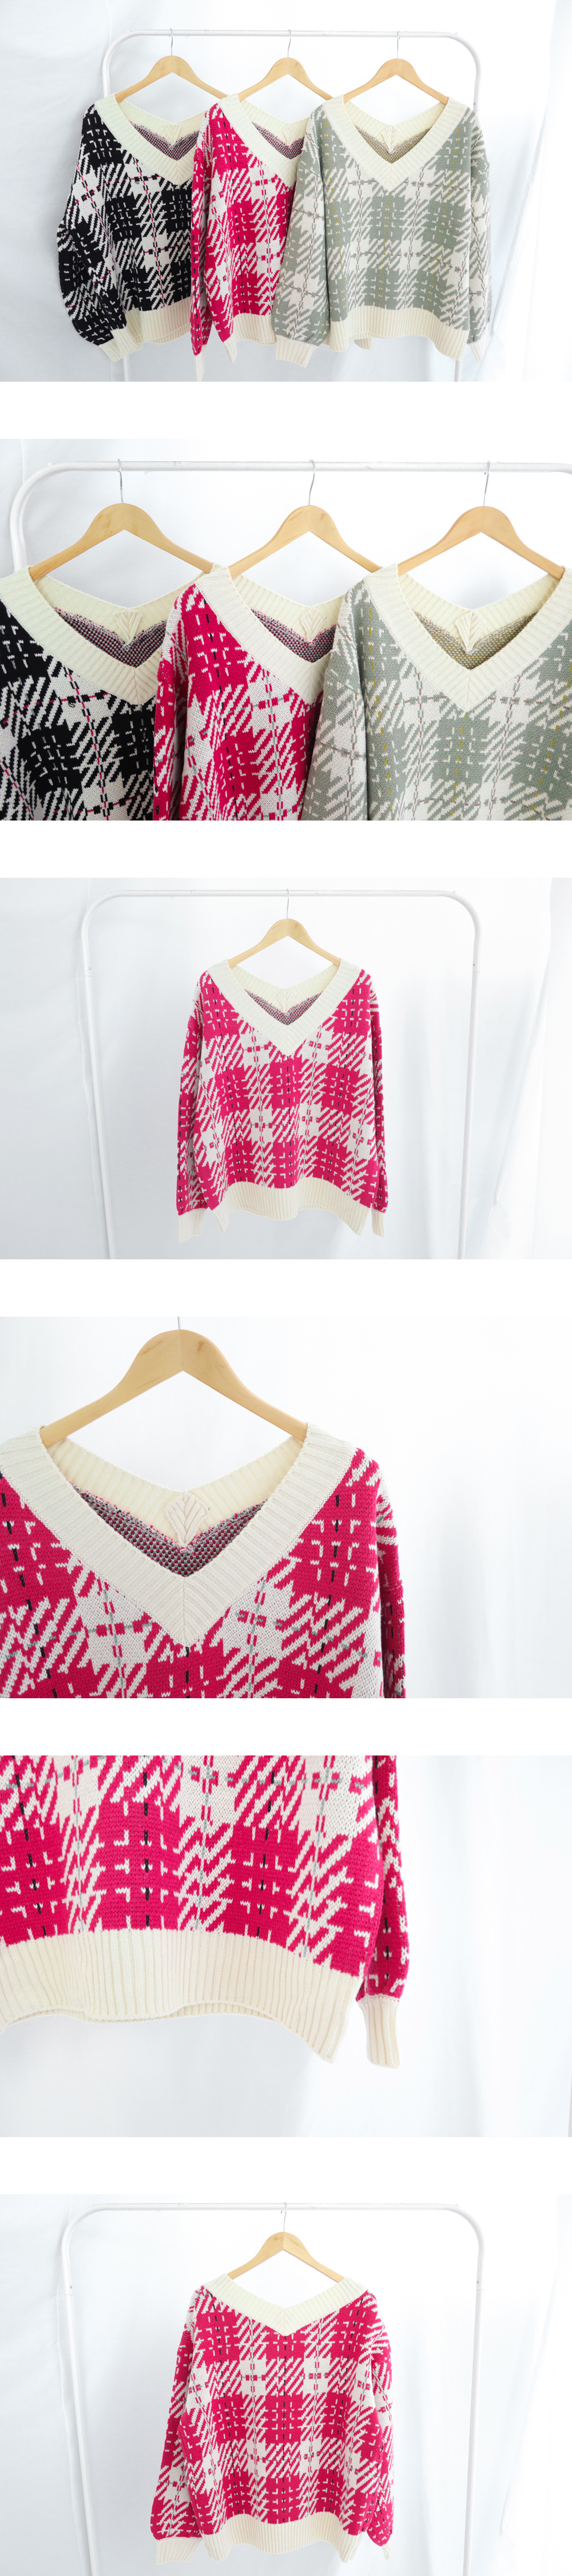 Harley check front and rear V-neck knit